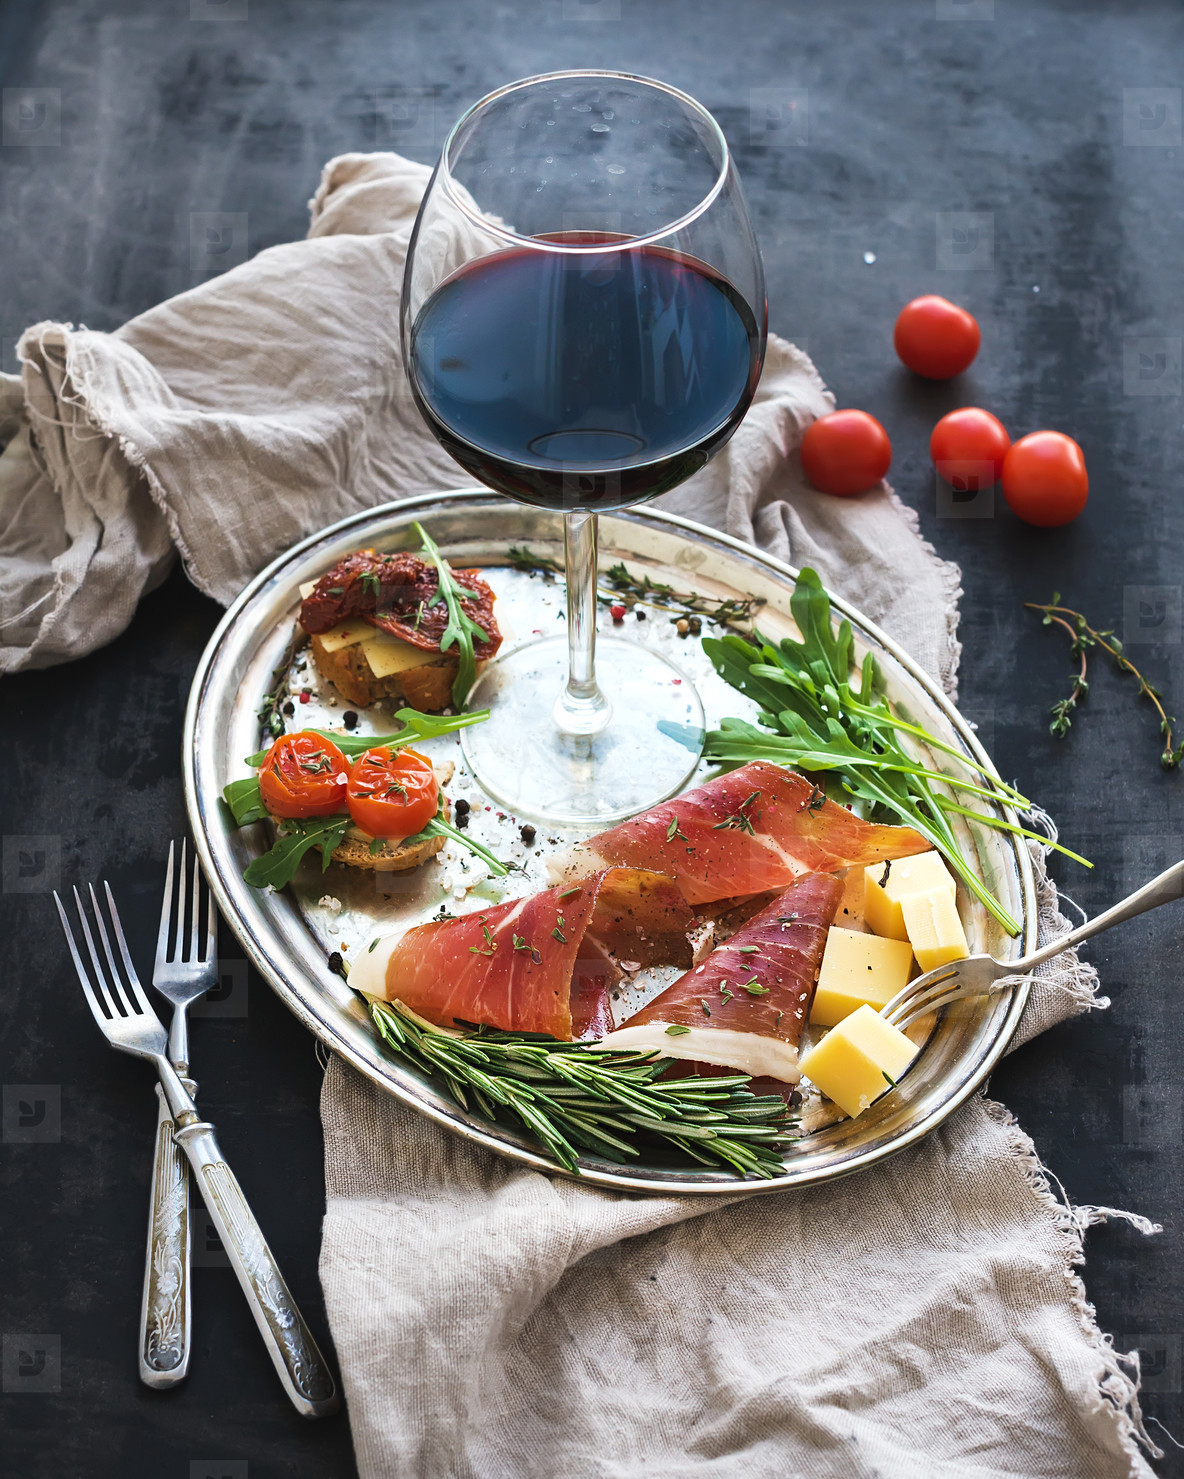 Wine appetizer set  Glass of red wine  vintage dinnerware  brushetta with cherry  dried tomatoes  arugula  parmesan  smoked meat on silver tray over rustic grunge surface